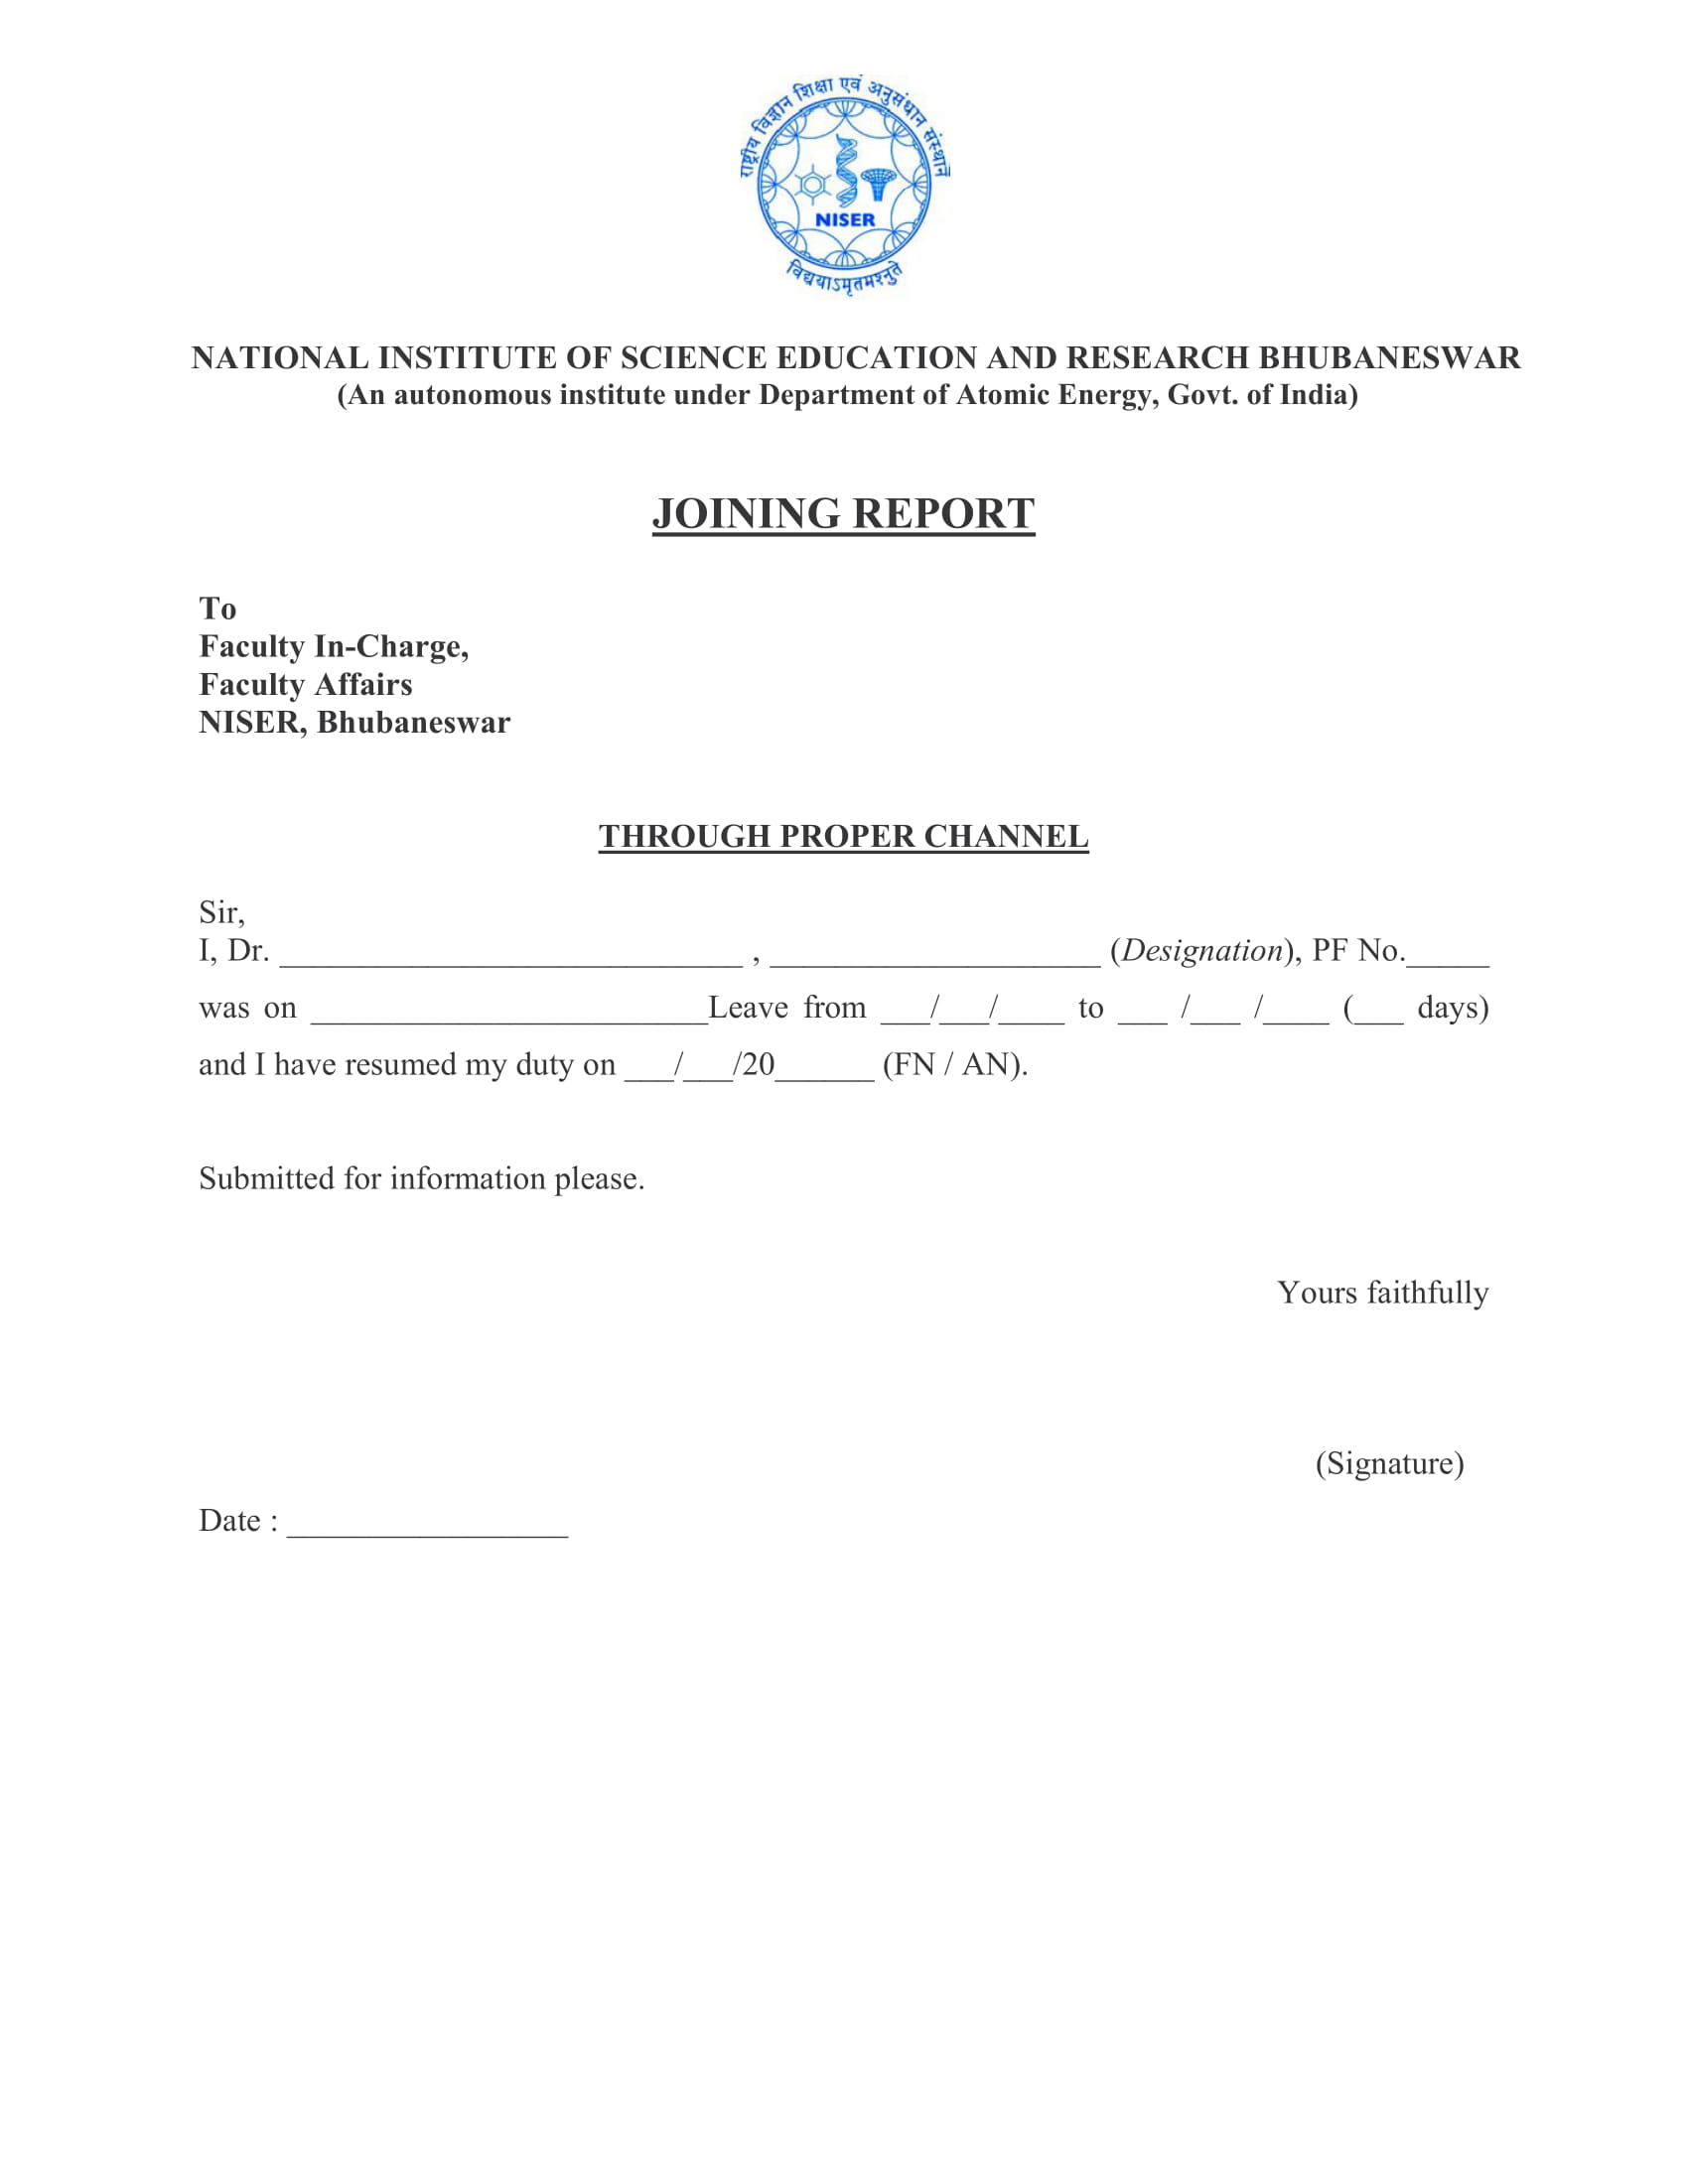 form sample for joining report 1